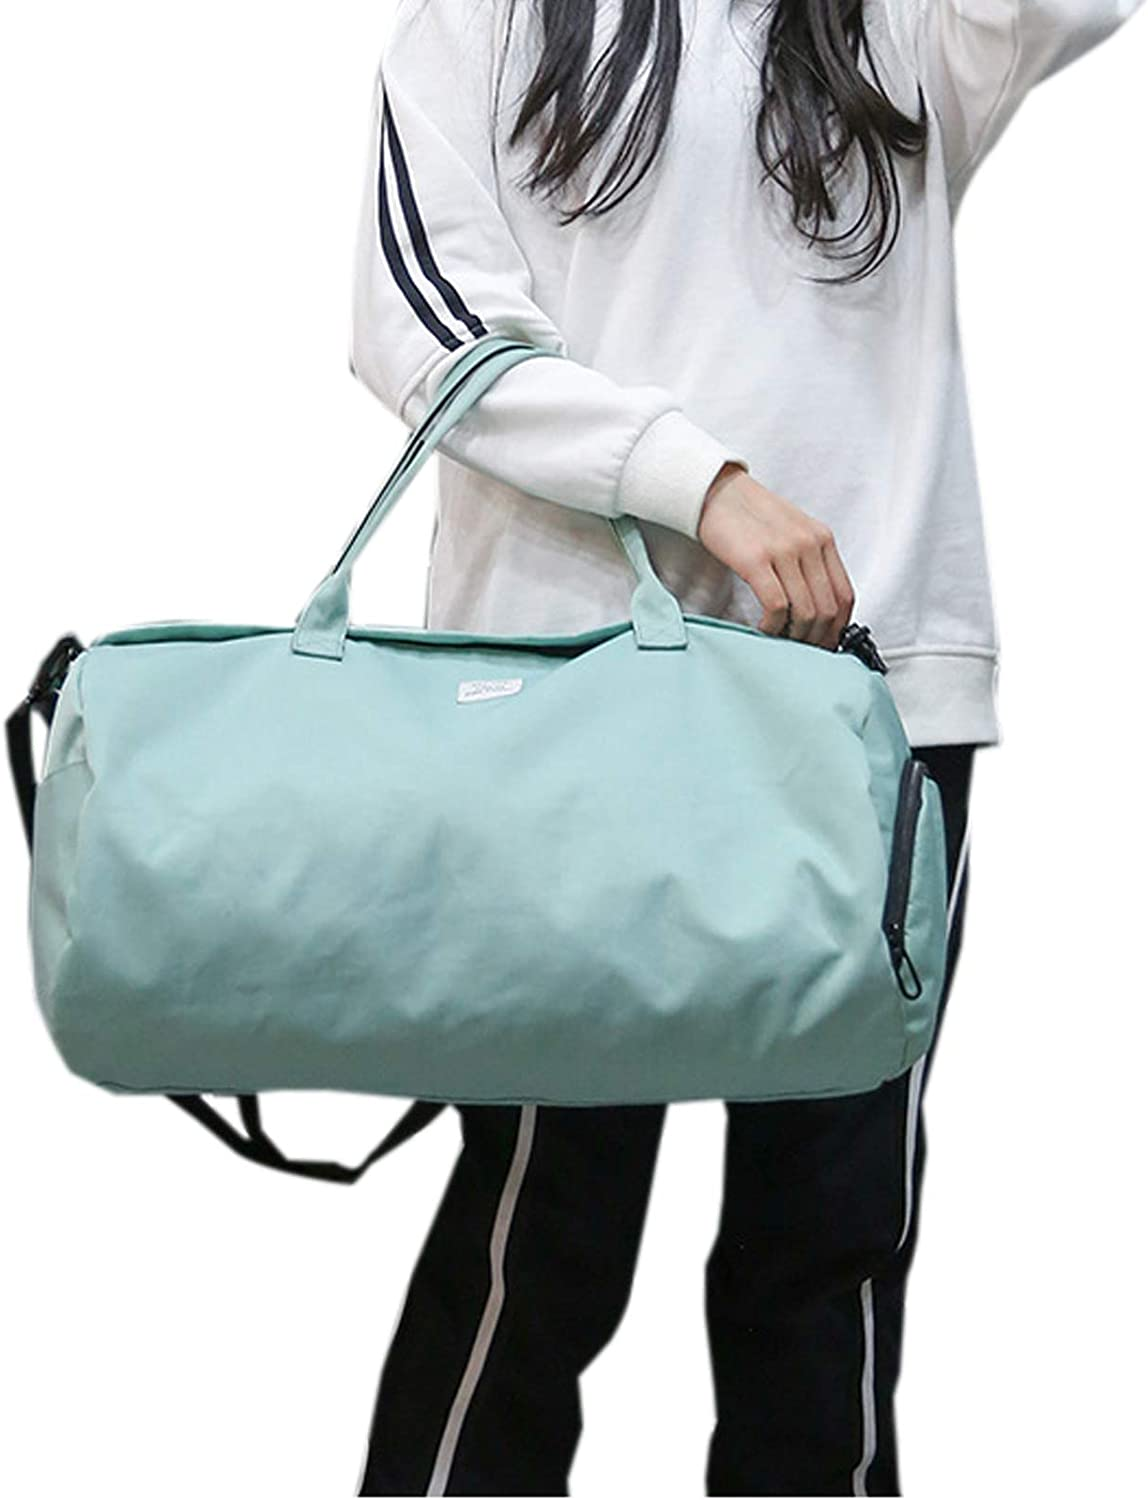 Elonglin Sports Duffle Bag Waterproof Gym Travel Bag with Shoes Compartment Green S